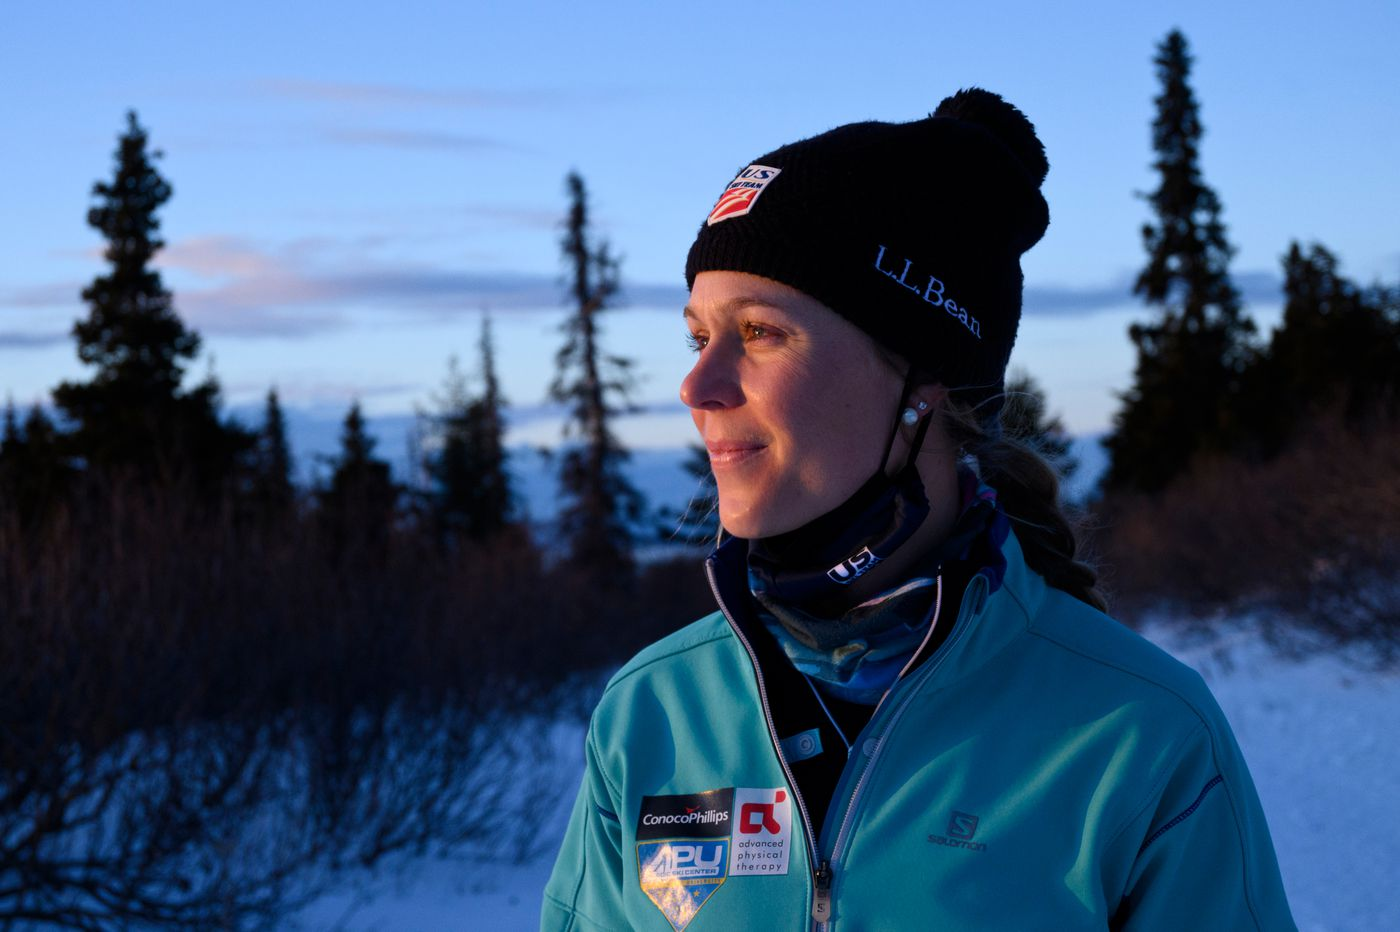 Sadie Maubet Bjornsen, veteran cross-country racer on the World Cup circuit, decided to spend less time racing this winter. (Marc Lester / ADN)